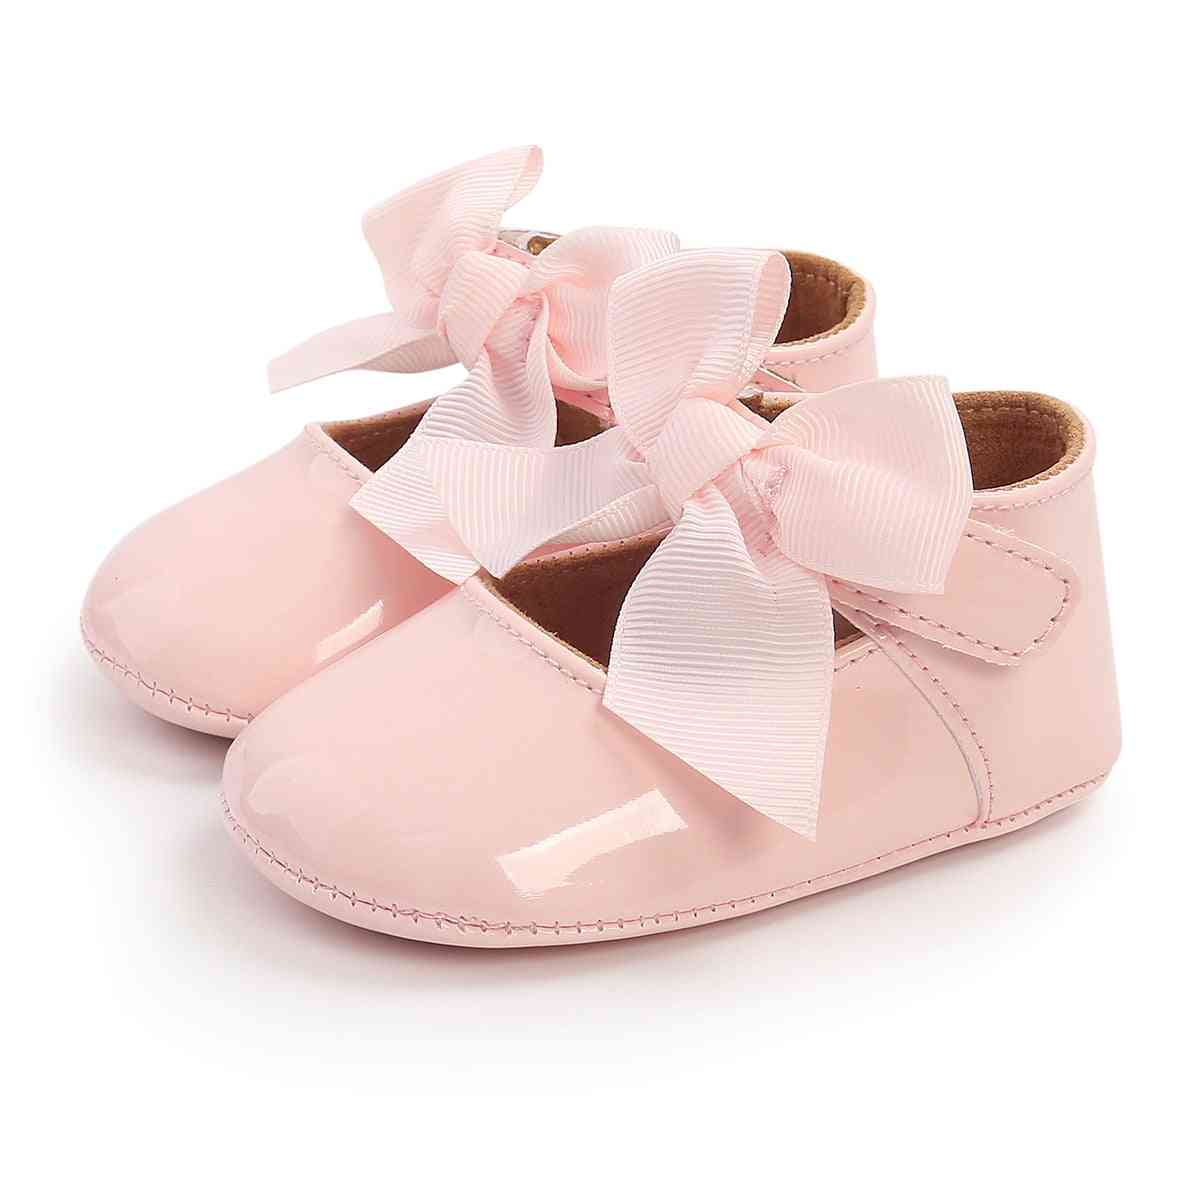 Baby Girl Baptism Shoes, Soft Sole Princess Flats With Cute Ribbon Bow, Non-slip